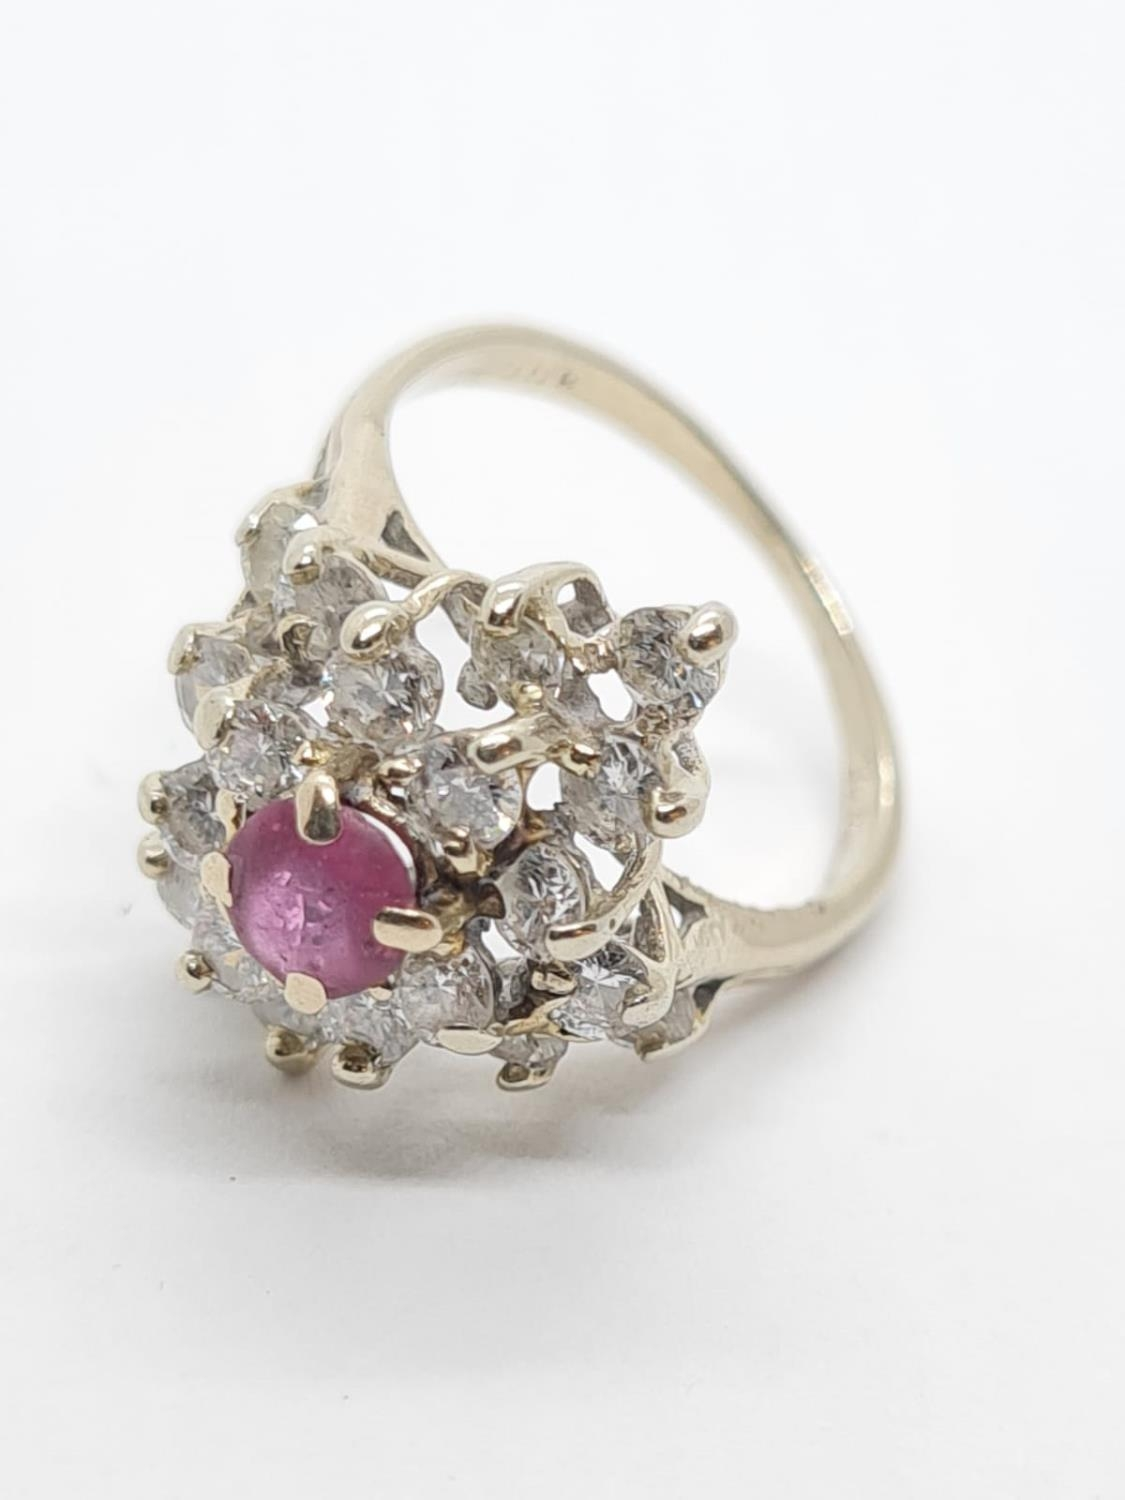 14ct Gold Ruby and Diamond RING. 2.8g Size H - Image 3 of 3